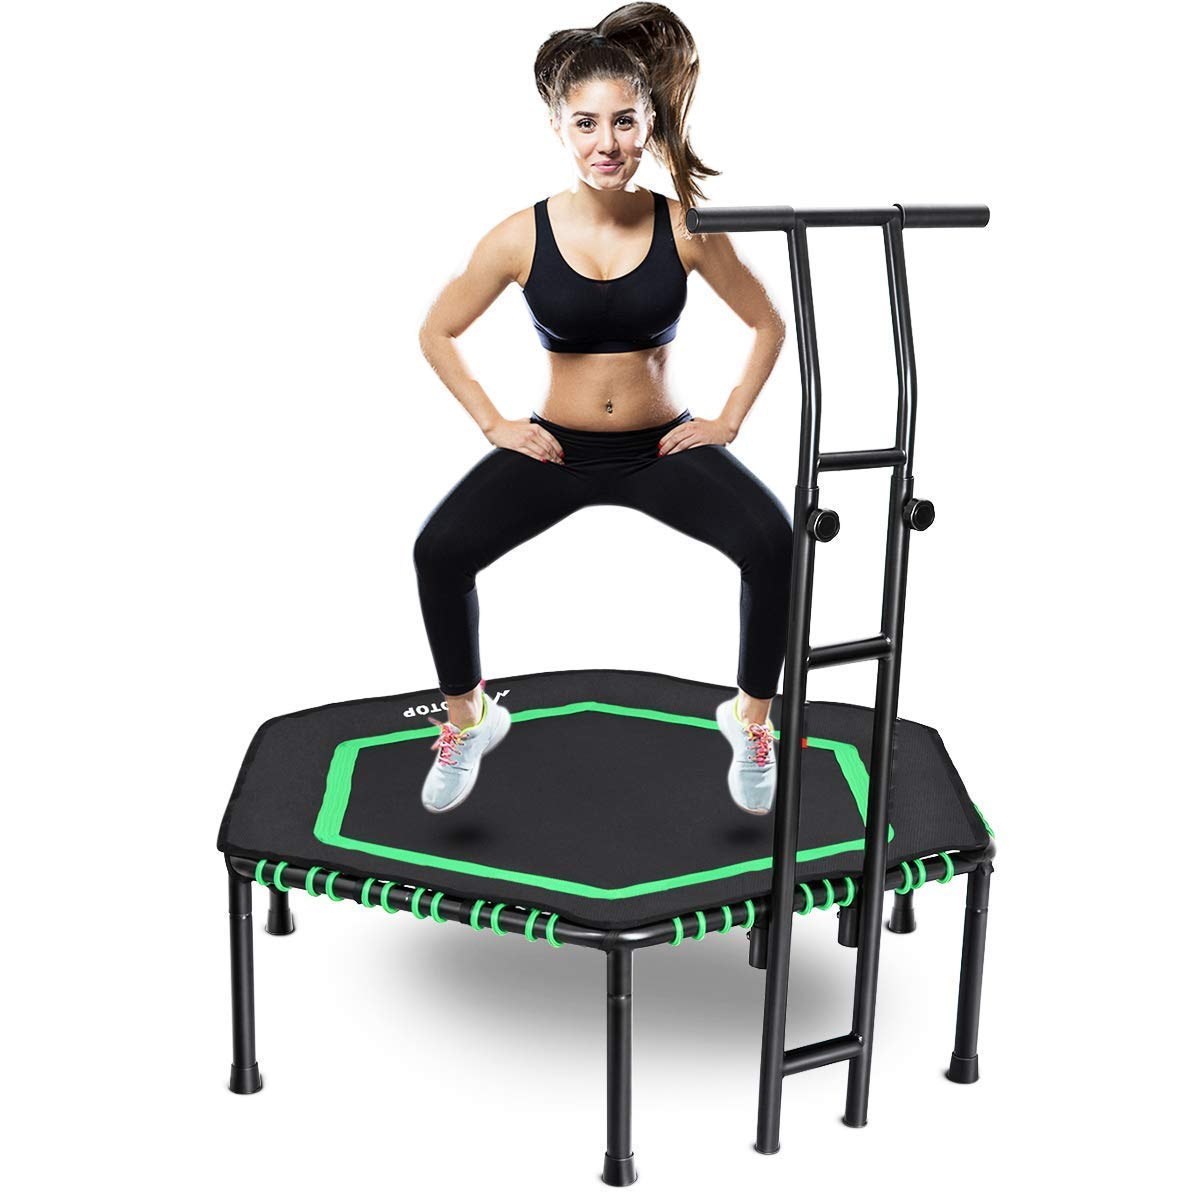 MOVTOTOP Indoor Trampoline with Adjustable Handrail Bar, 48 Inch rebounder for Kids Adults, Folding Jump Workout Trainer with Overed Bungee Rope System for Cardio Exercise - Max Limit 264 lbs (Green)